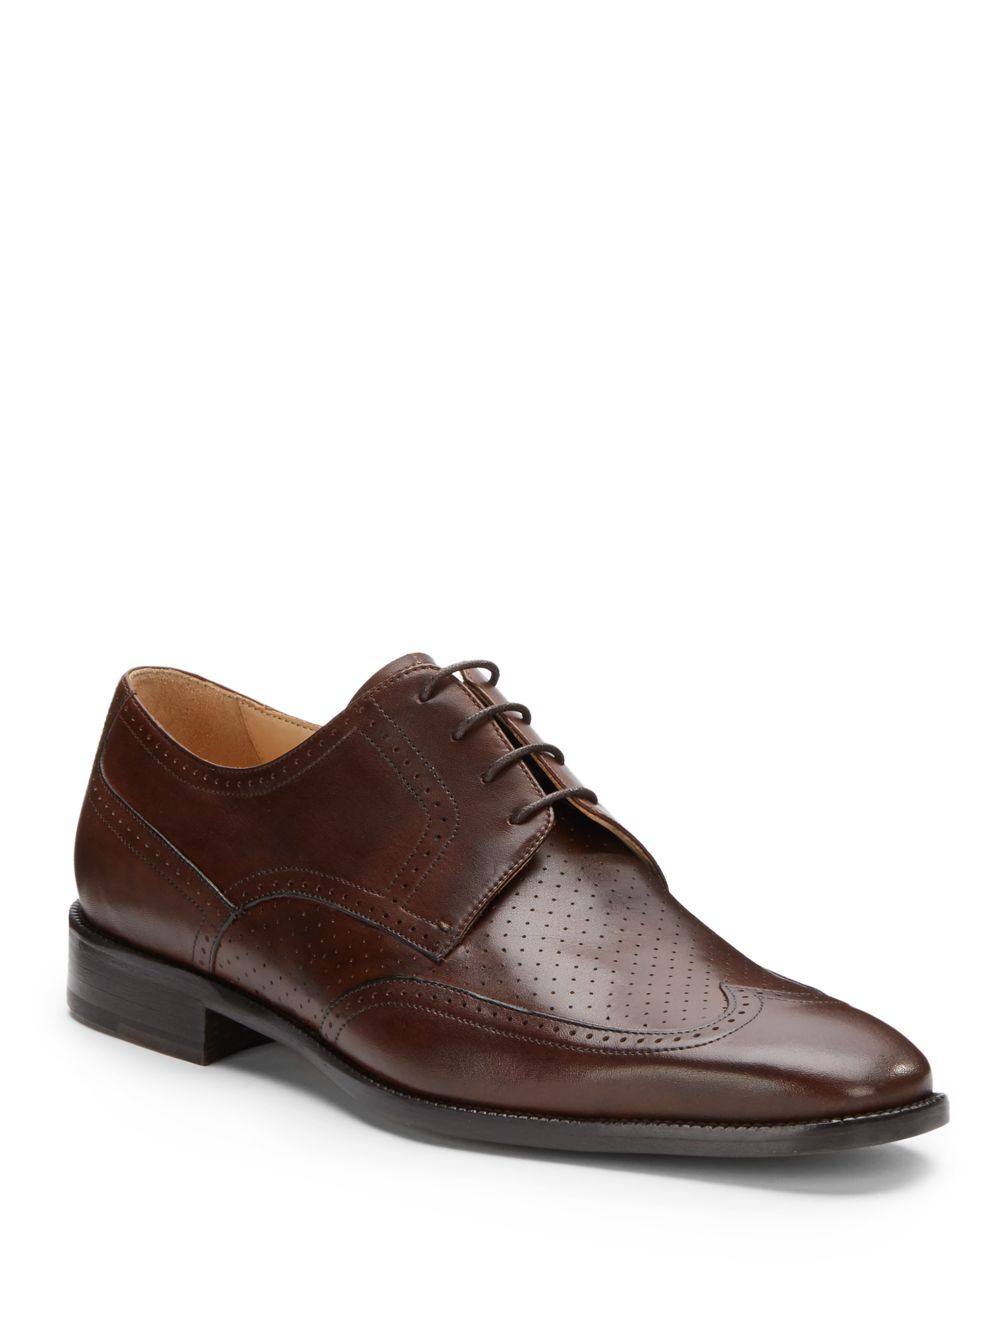 saks fifth avenue black label perforated leather wingtip